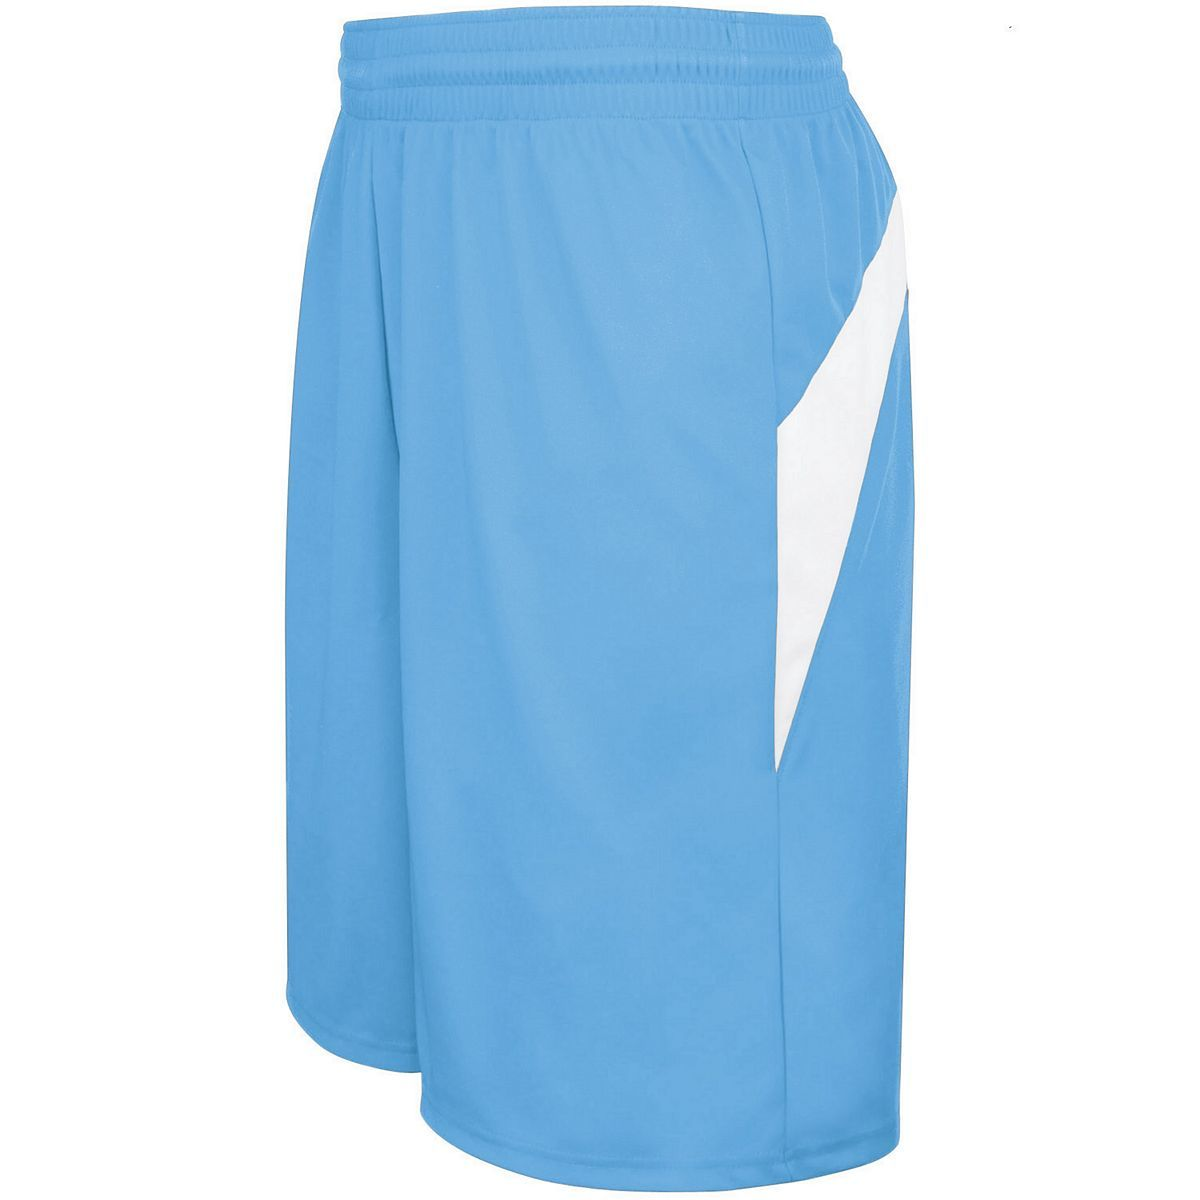 Adult Transition Game Shorts - COLUMBIA BLUE/WHITE